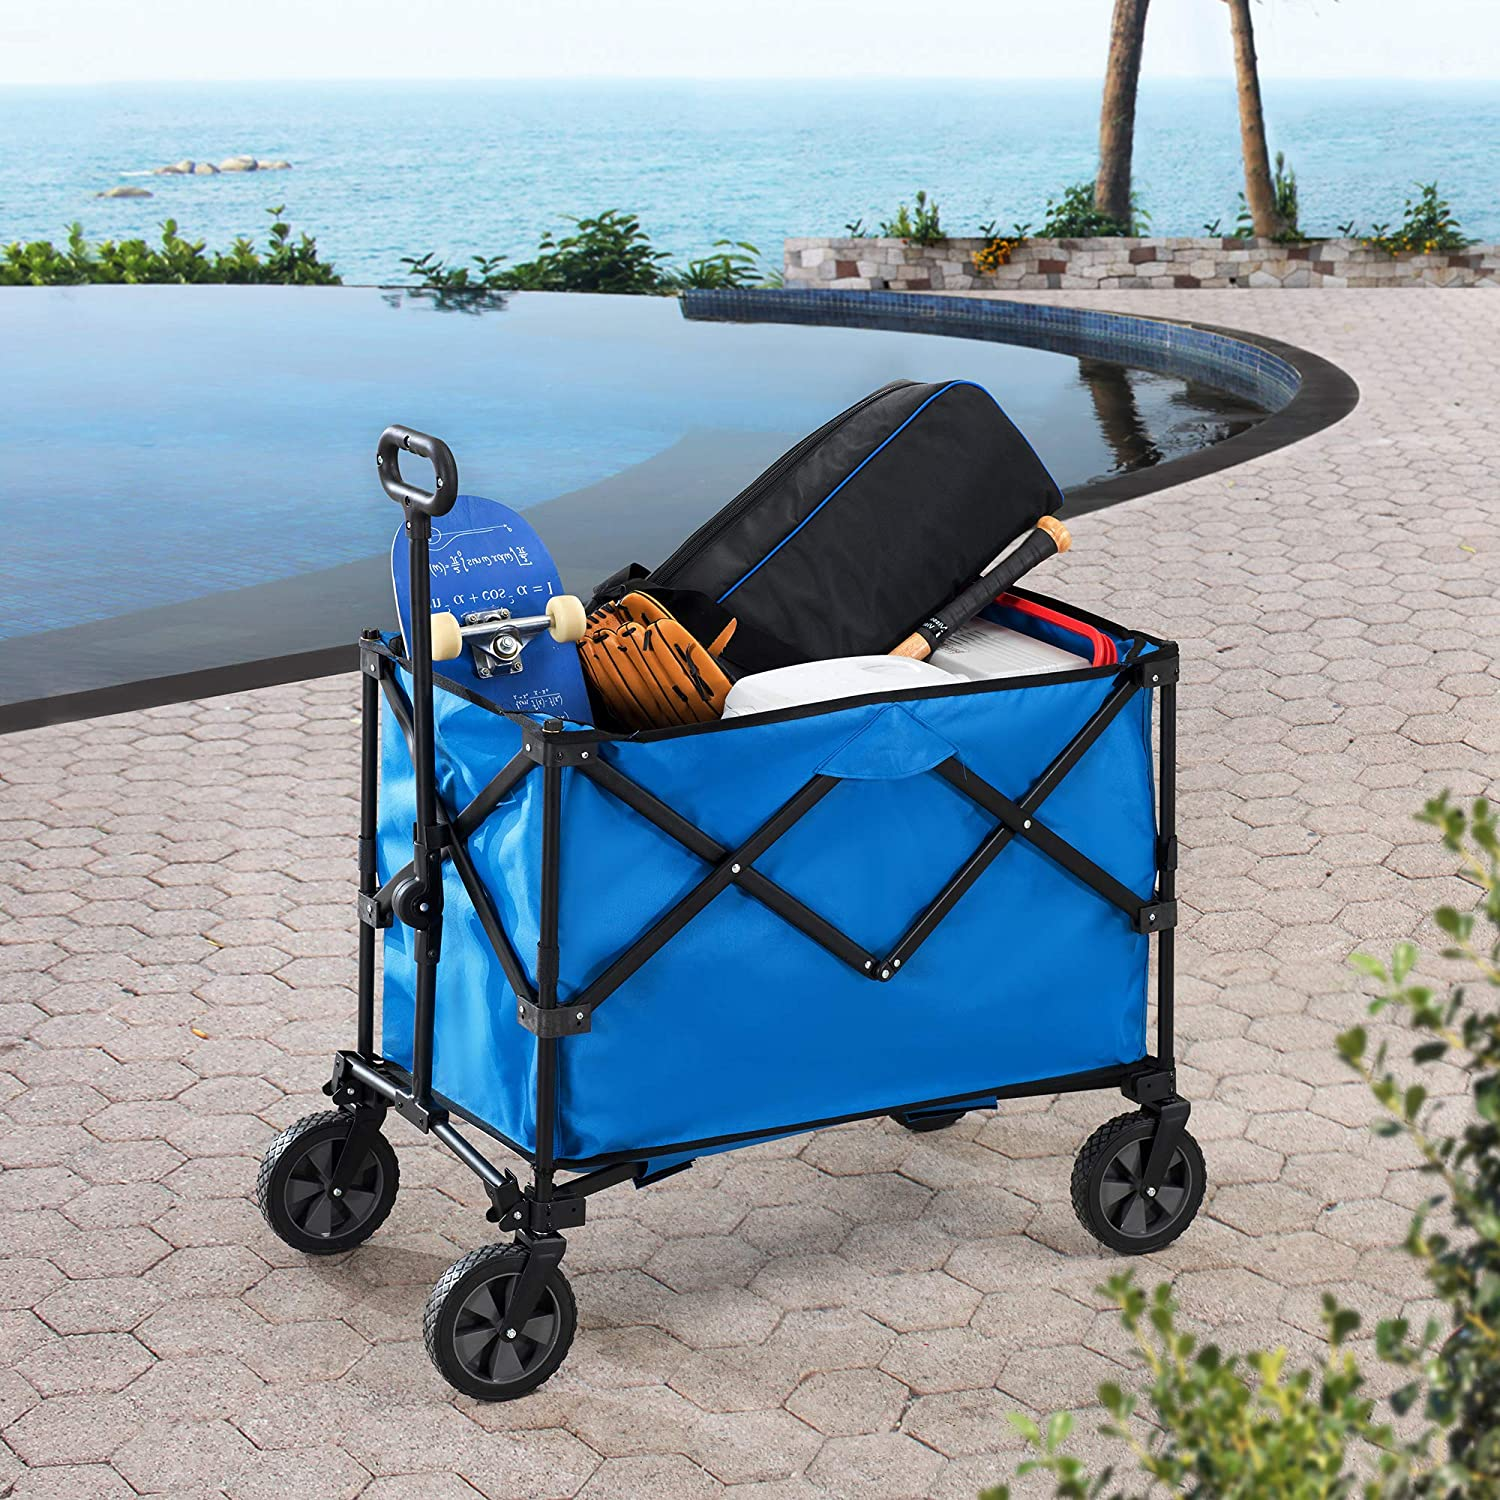 Sunjoy Odell Collapsible Free shipping anywhere in the nation Folding Wagon Albuquerque Mall with Cart Wheels Blue